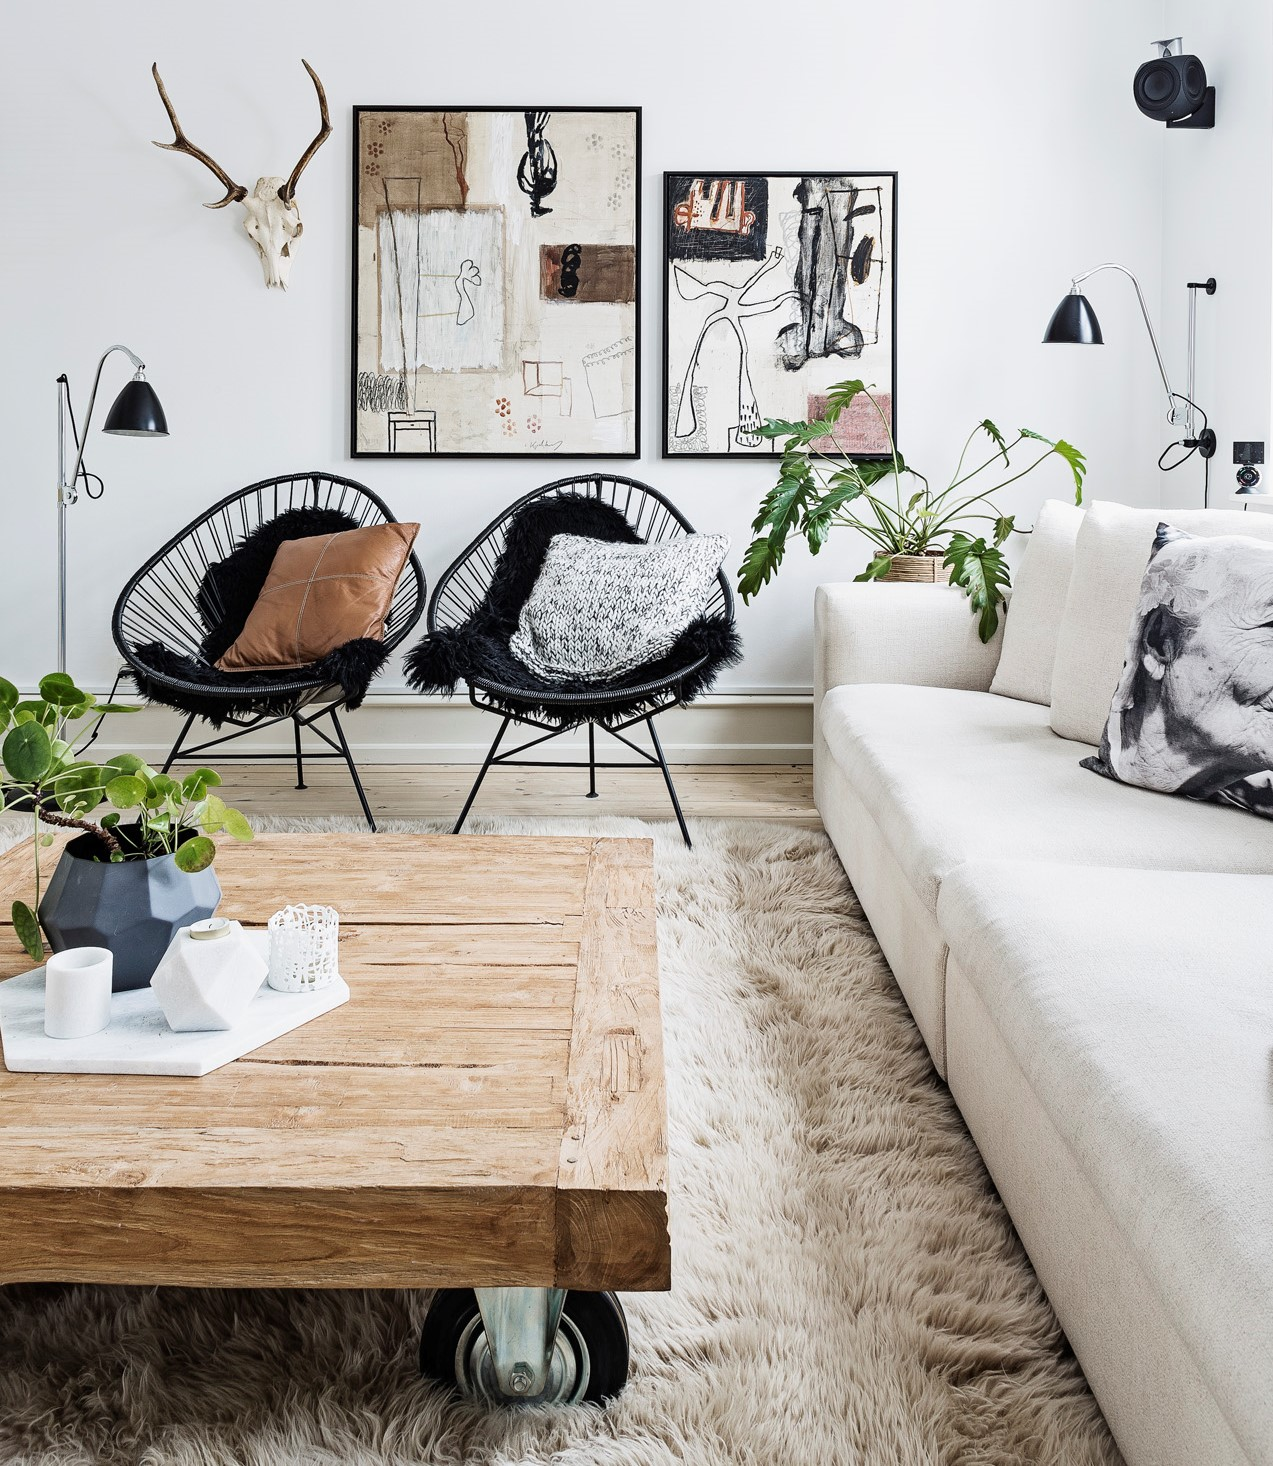 furniture scandinavian designs carry many original scandinavian